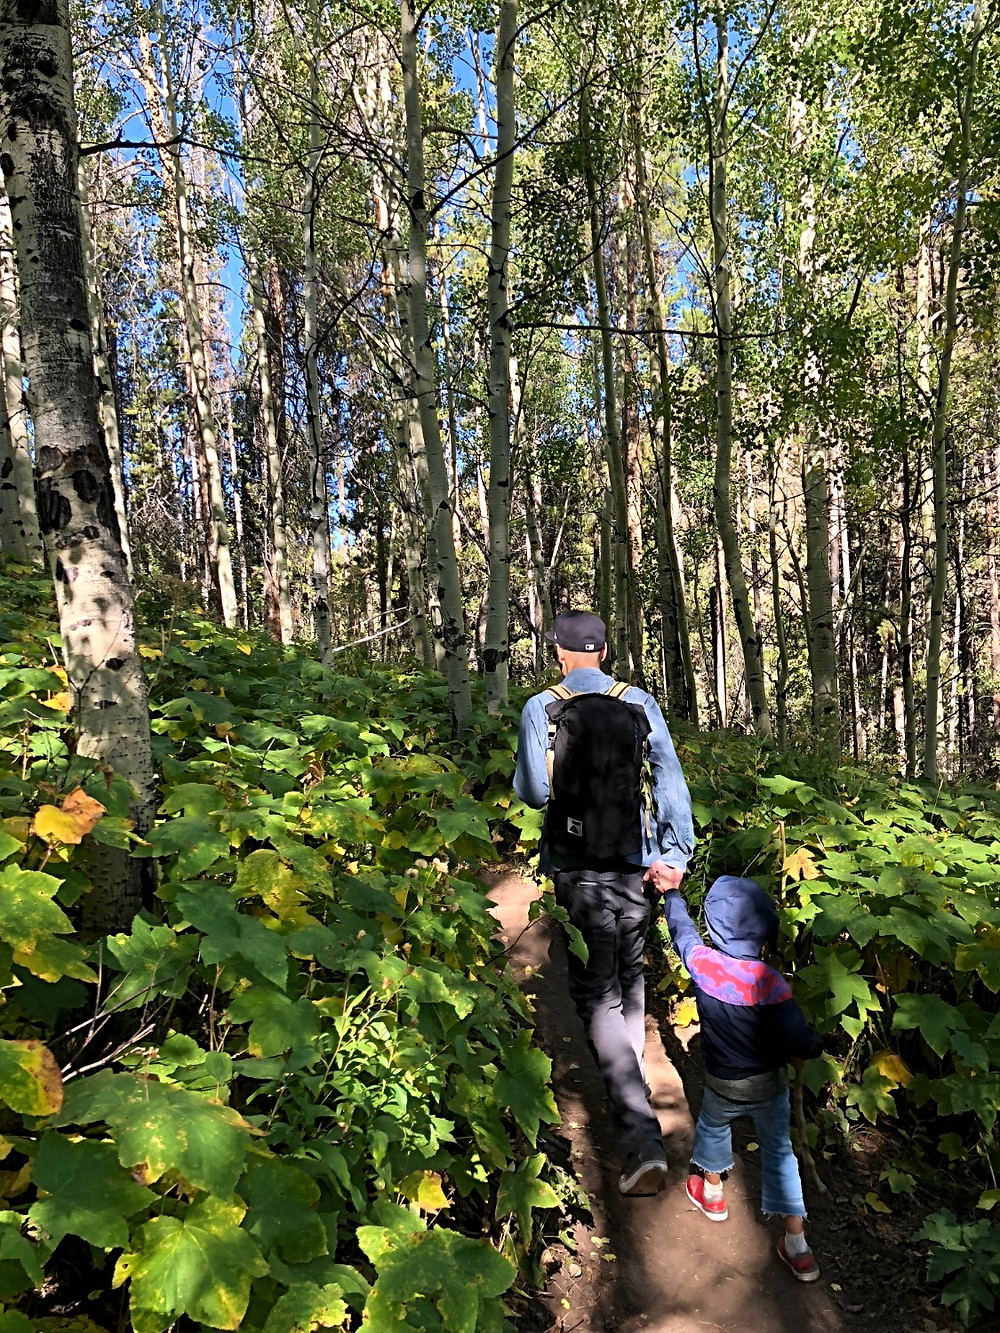 Lionshead Rock Trail, Curious G and Me, best hiking trails for kids, Colorado hiking with kids